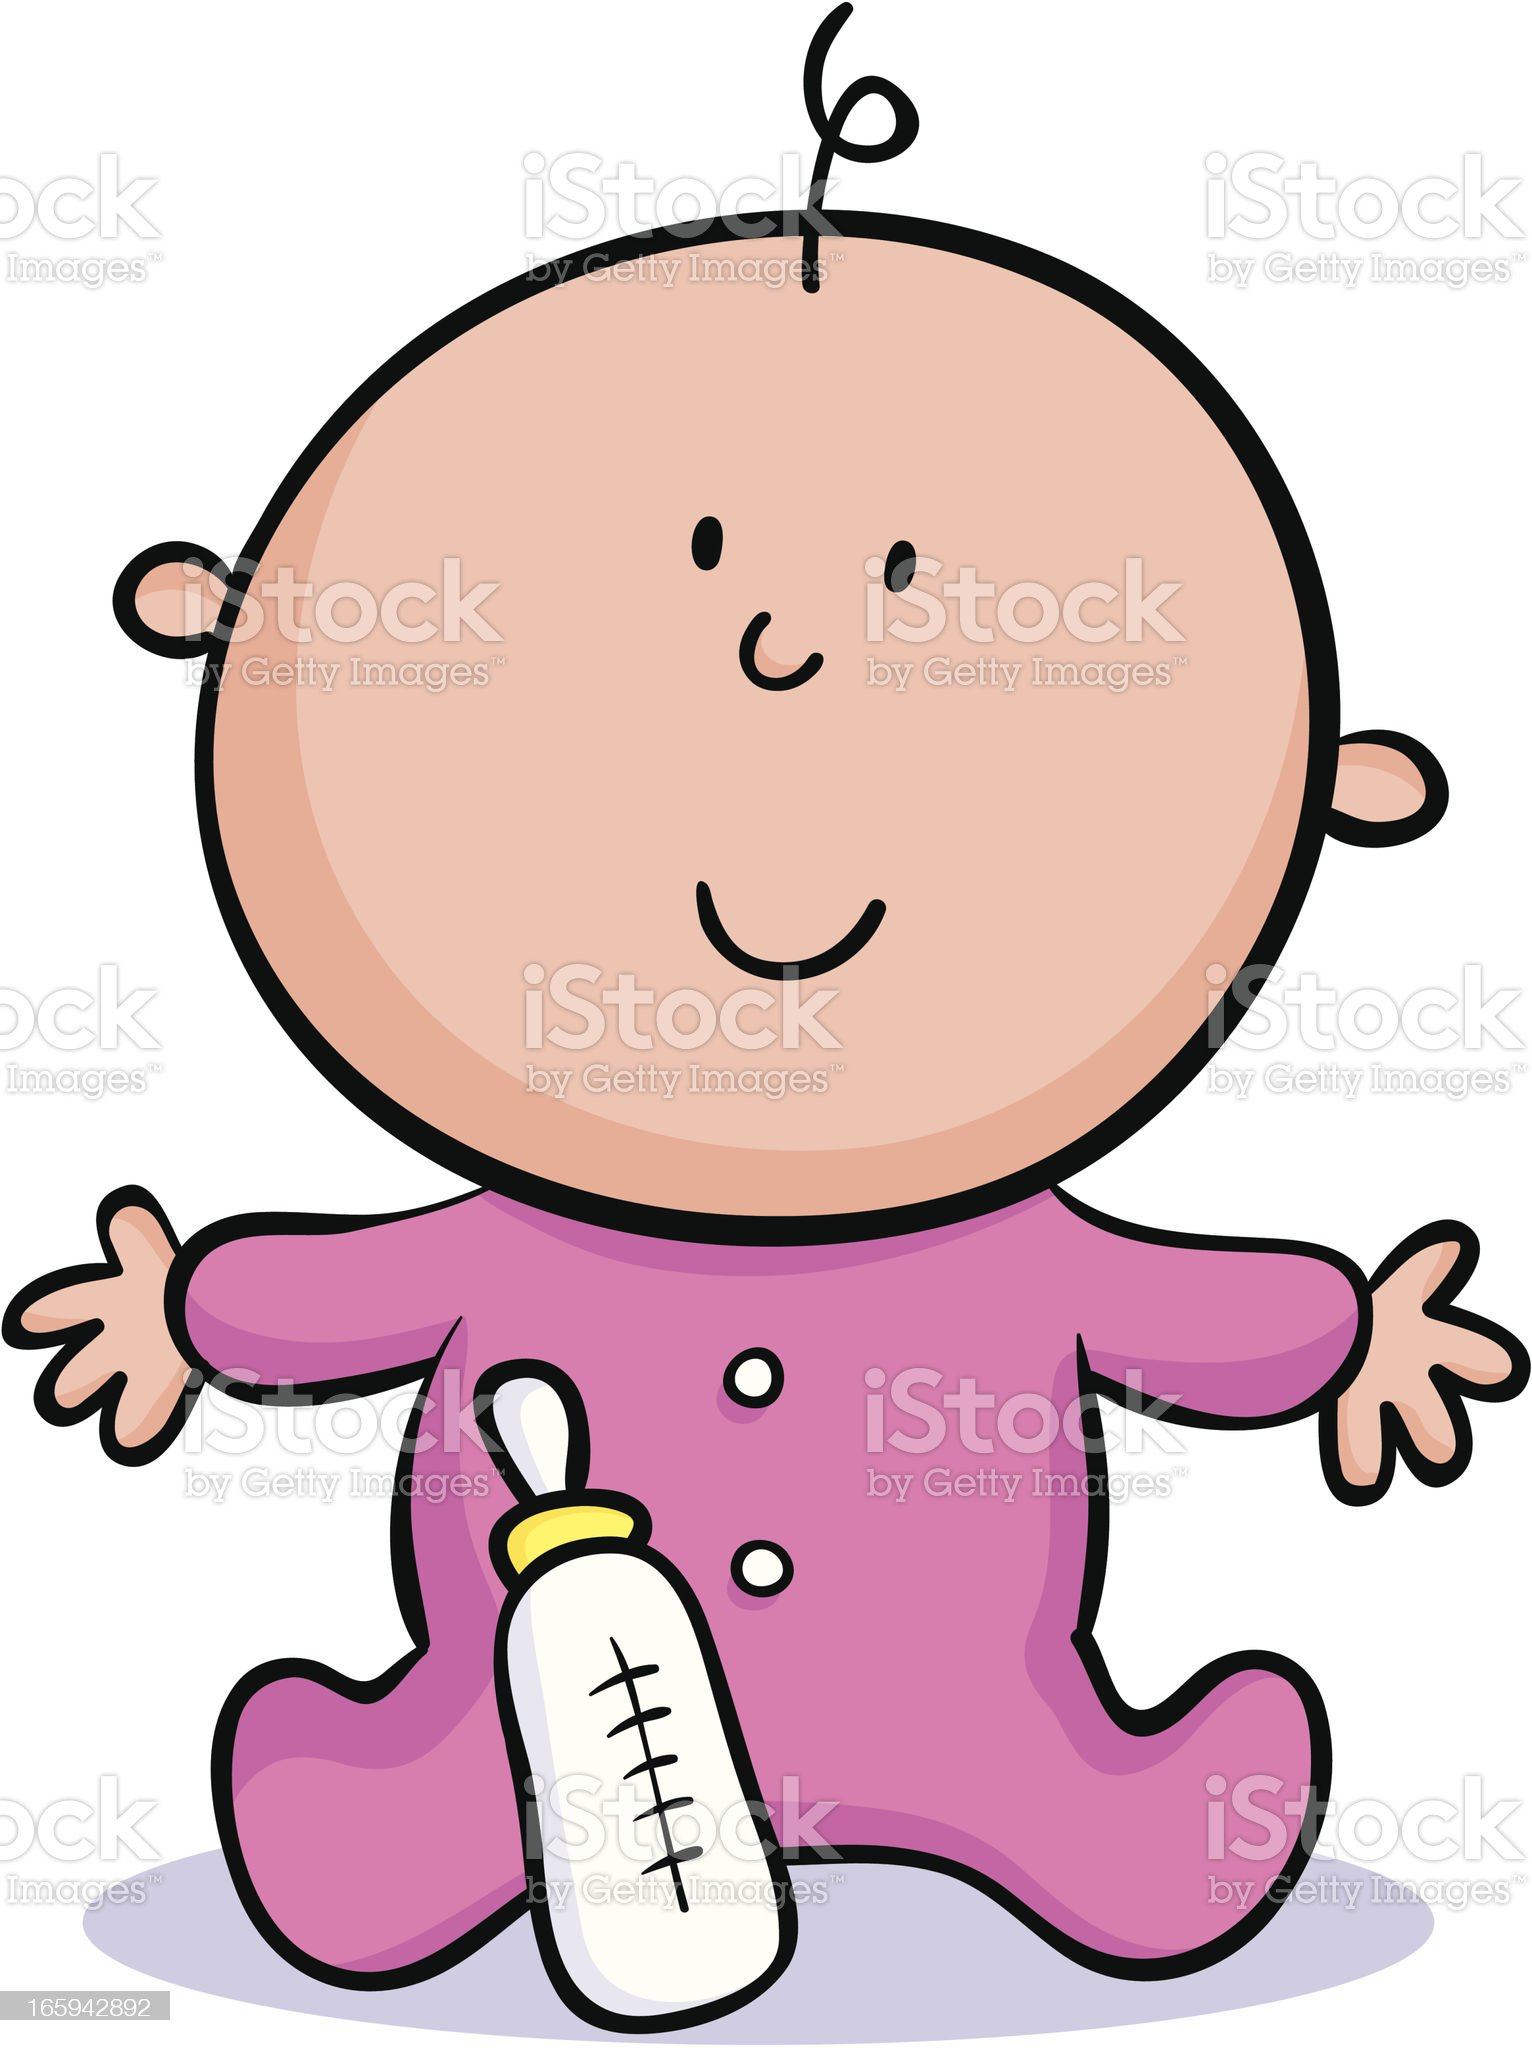 Cartoon baby with a pink onesie and bottle royalty-free stock vector art